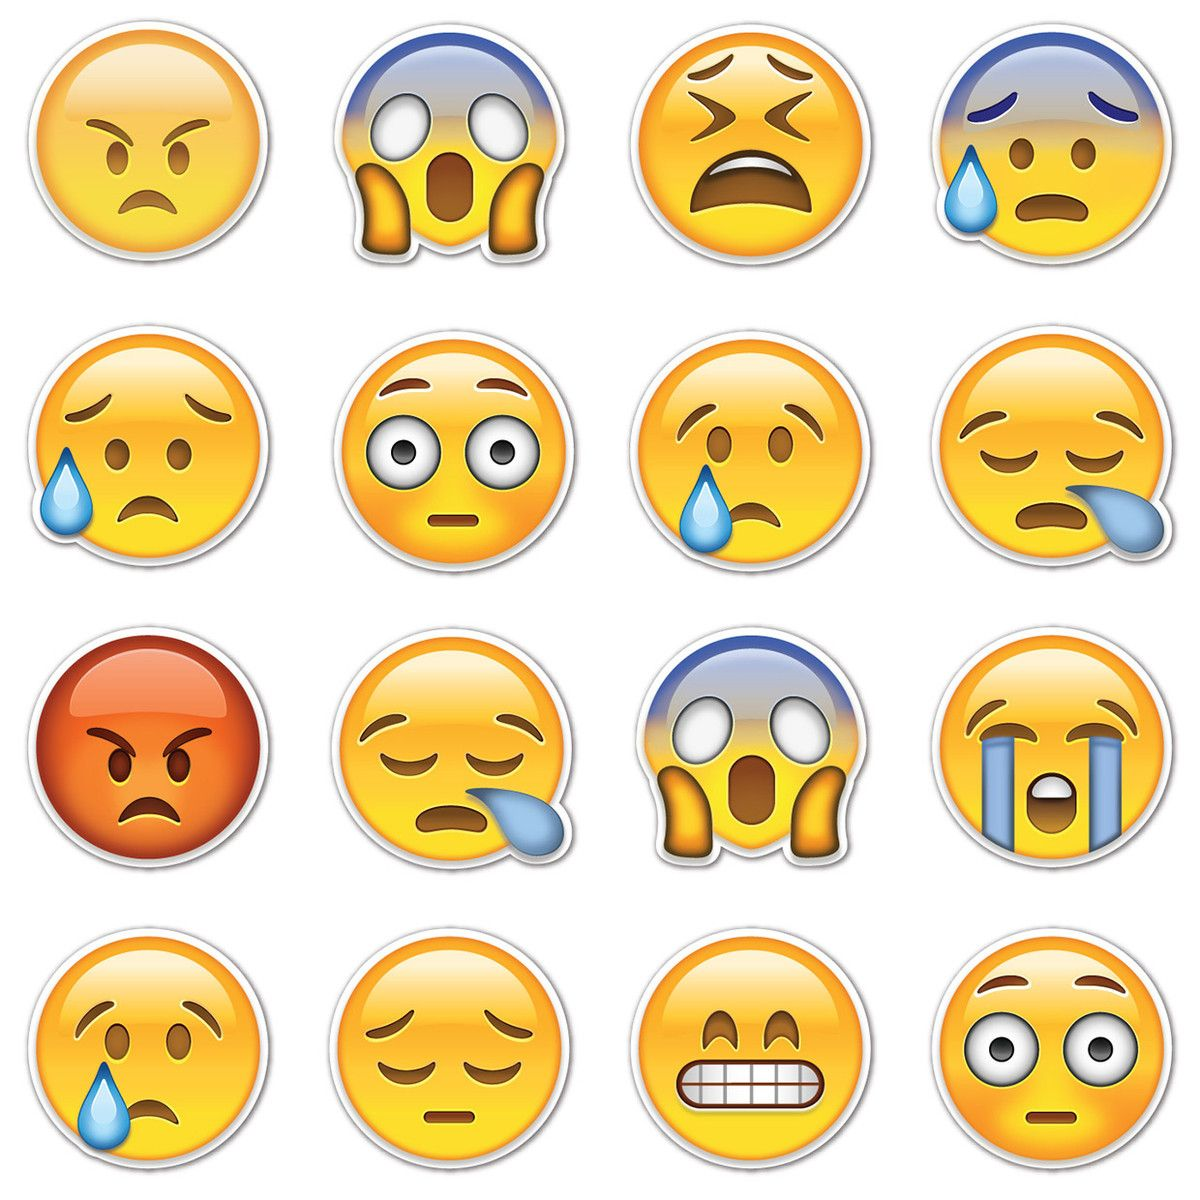 Emoji is an app filled with a bunch of emoticons that you can use emoji is an app filled with a bunch of emoticons that you can use buycottarizona Choice Image